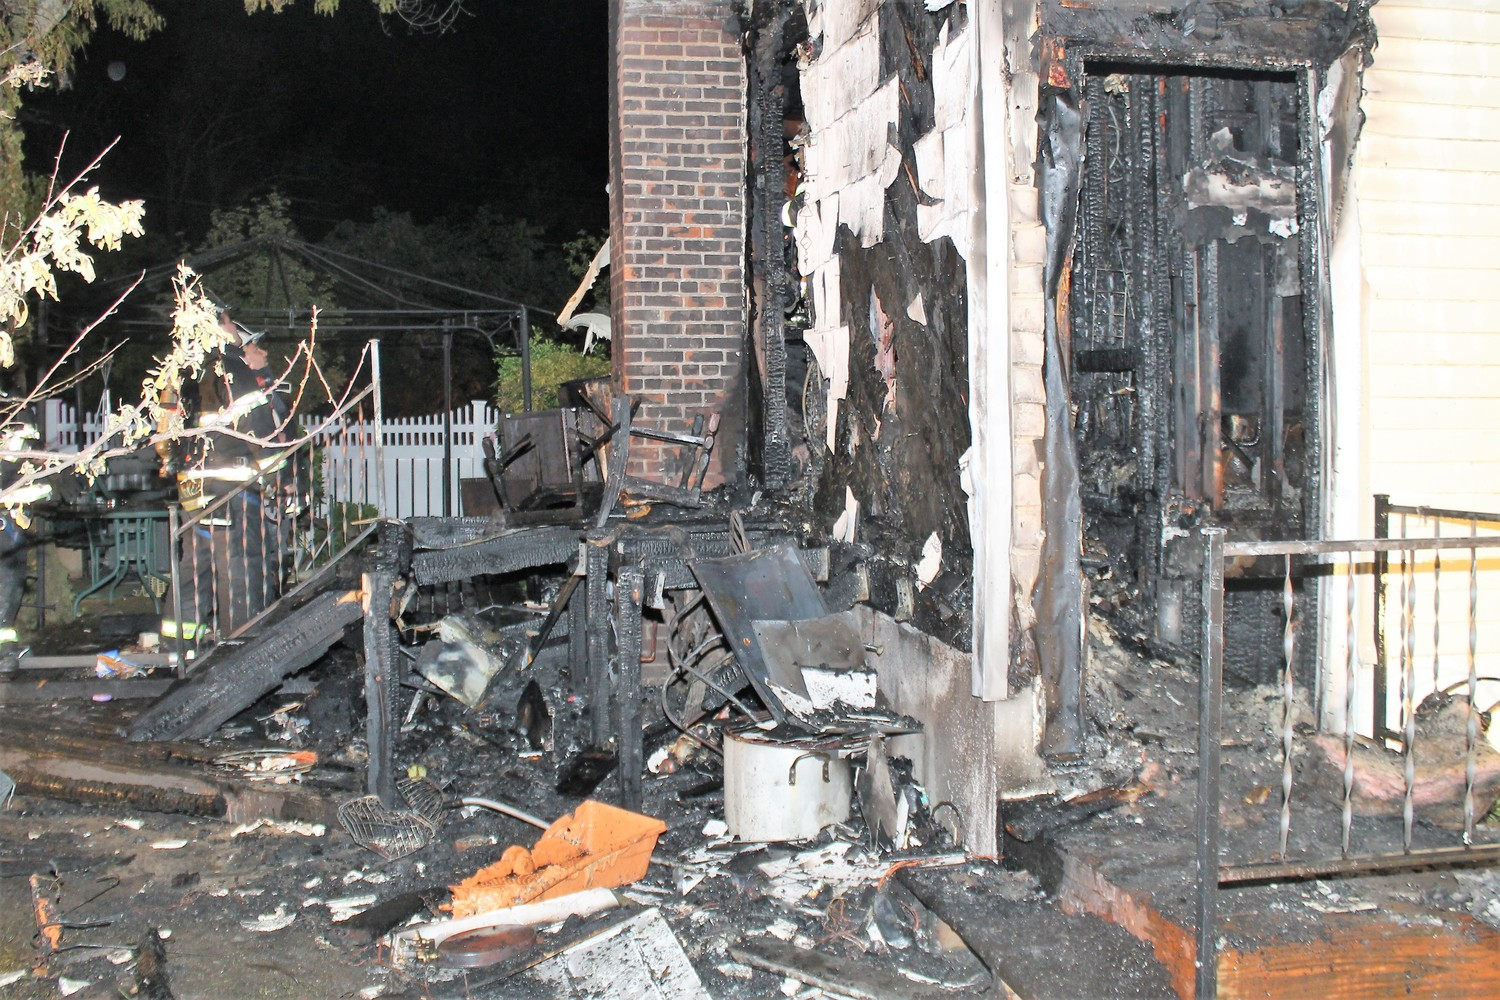 The house was severely damaged in the blaze.